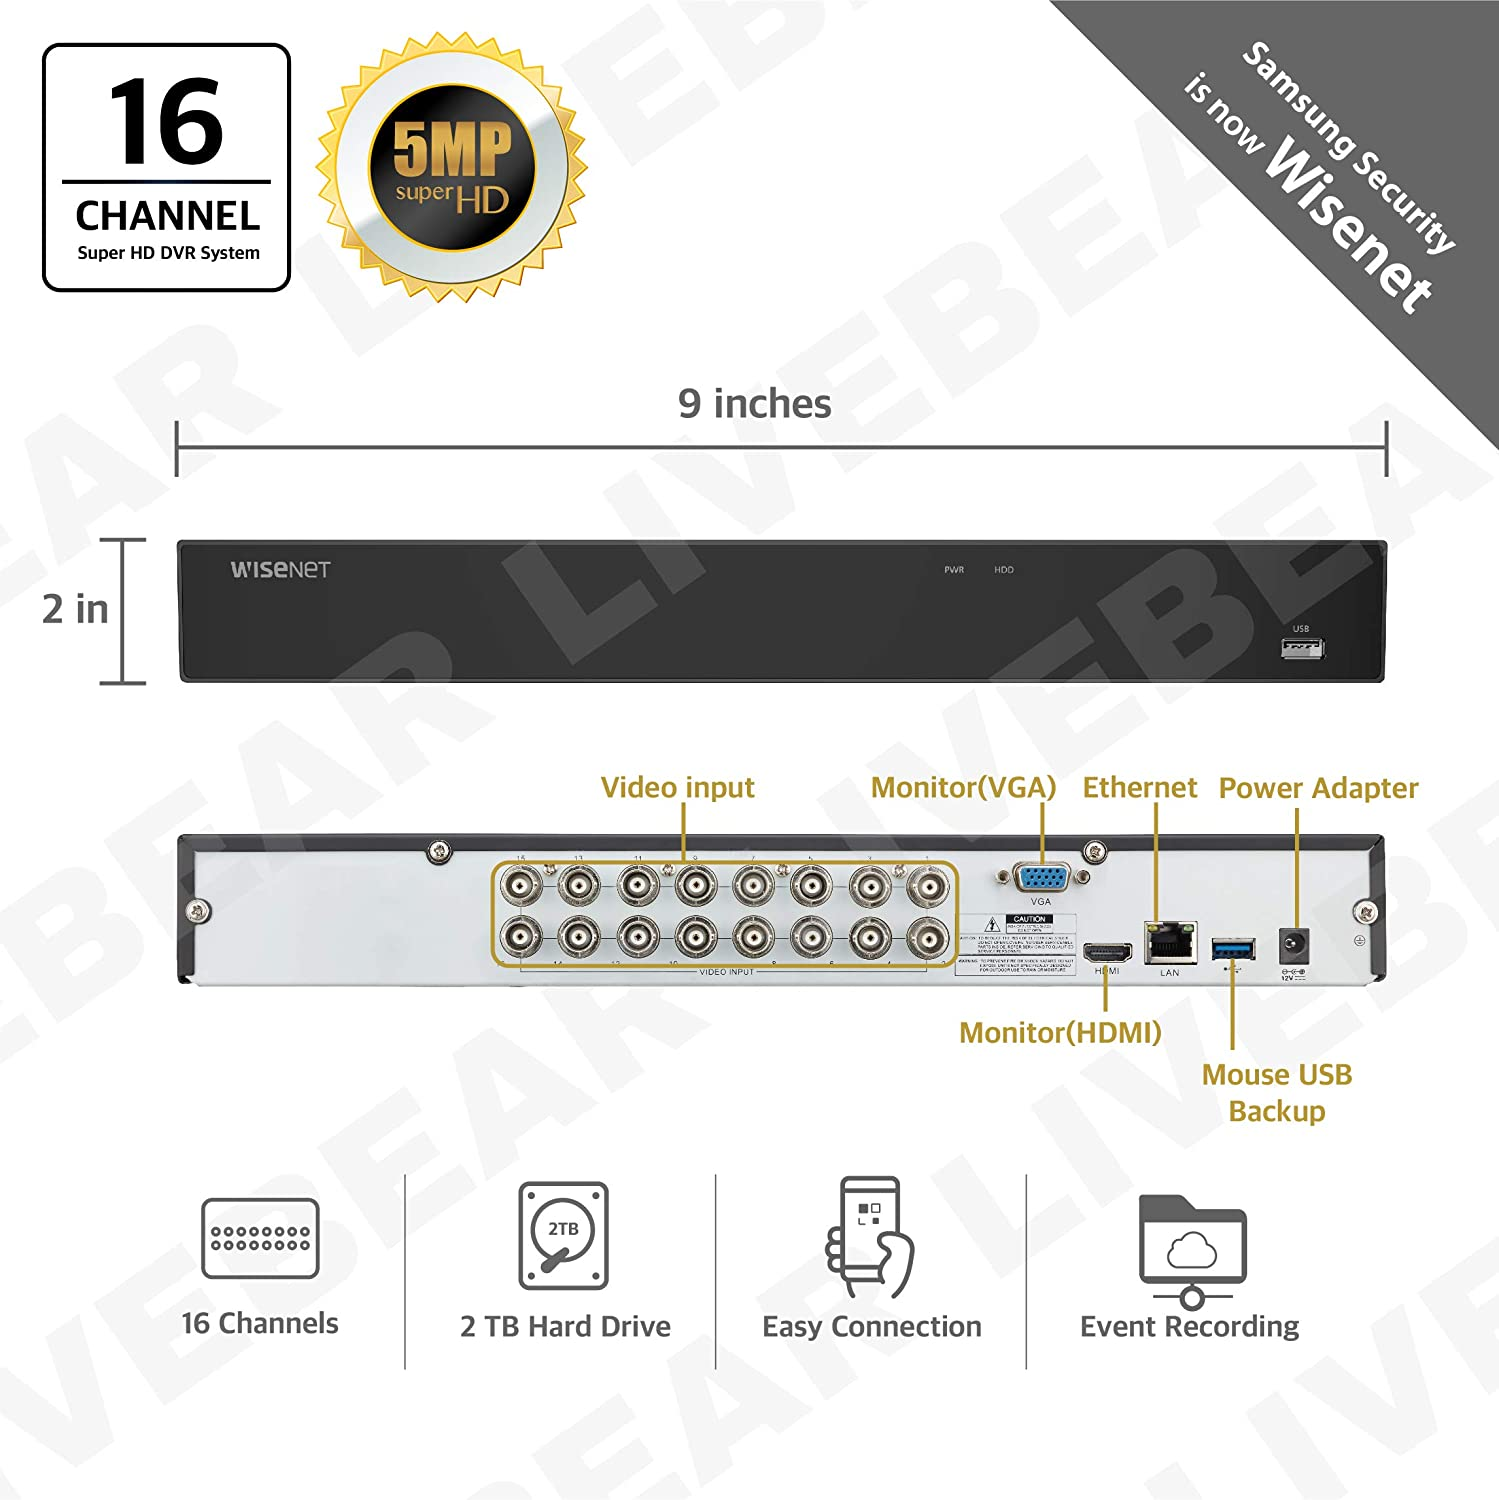 Wisenet SDH-C85105-16 16 Channel Super HD DVR Video Security System with 2TB Hard Drive and 16 5MP Weather Resistant Bullet Cameras SDC-89445BF